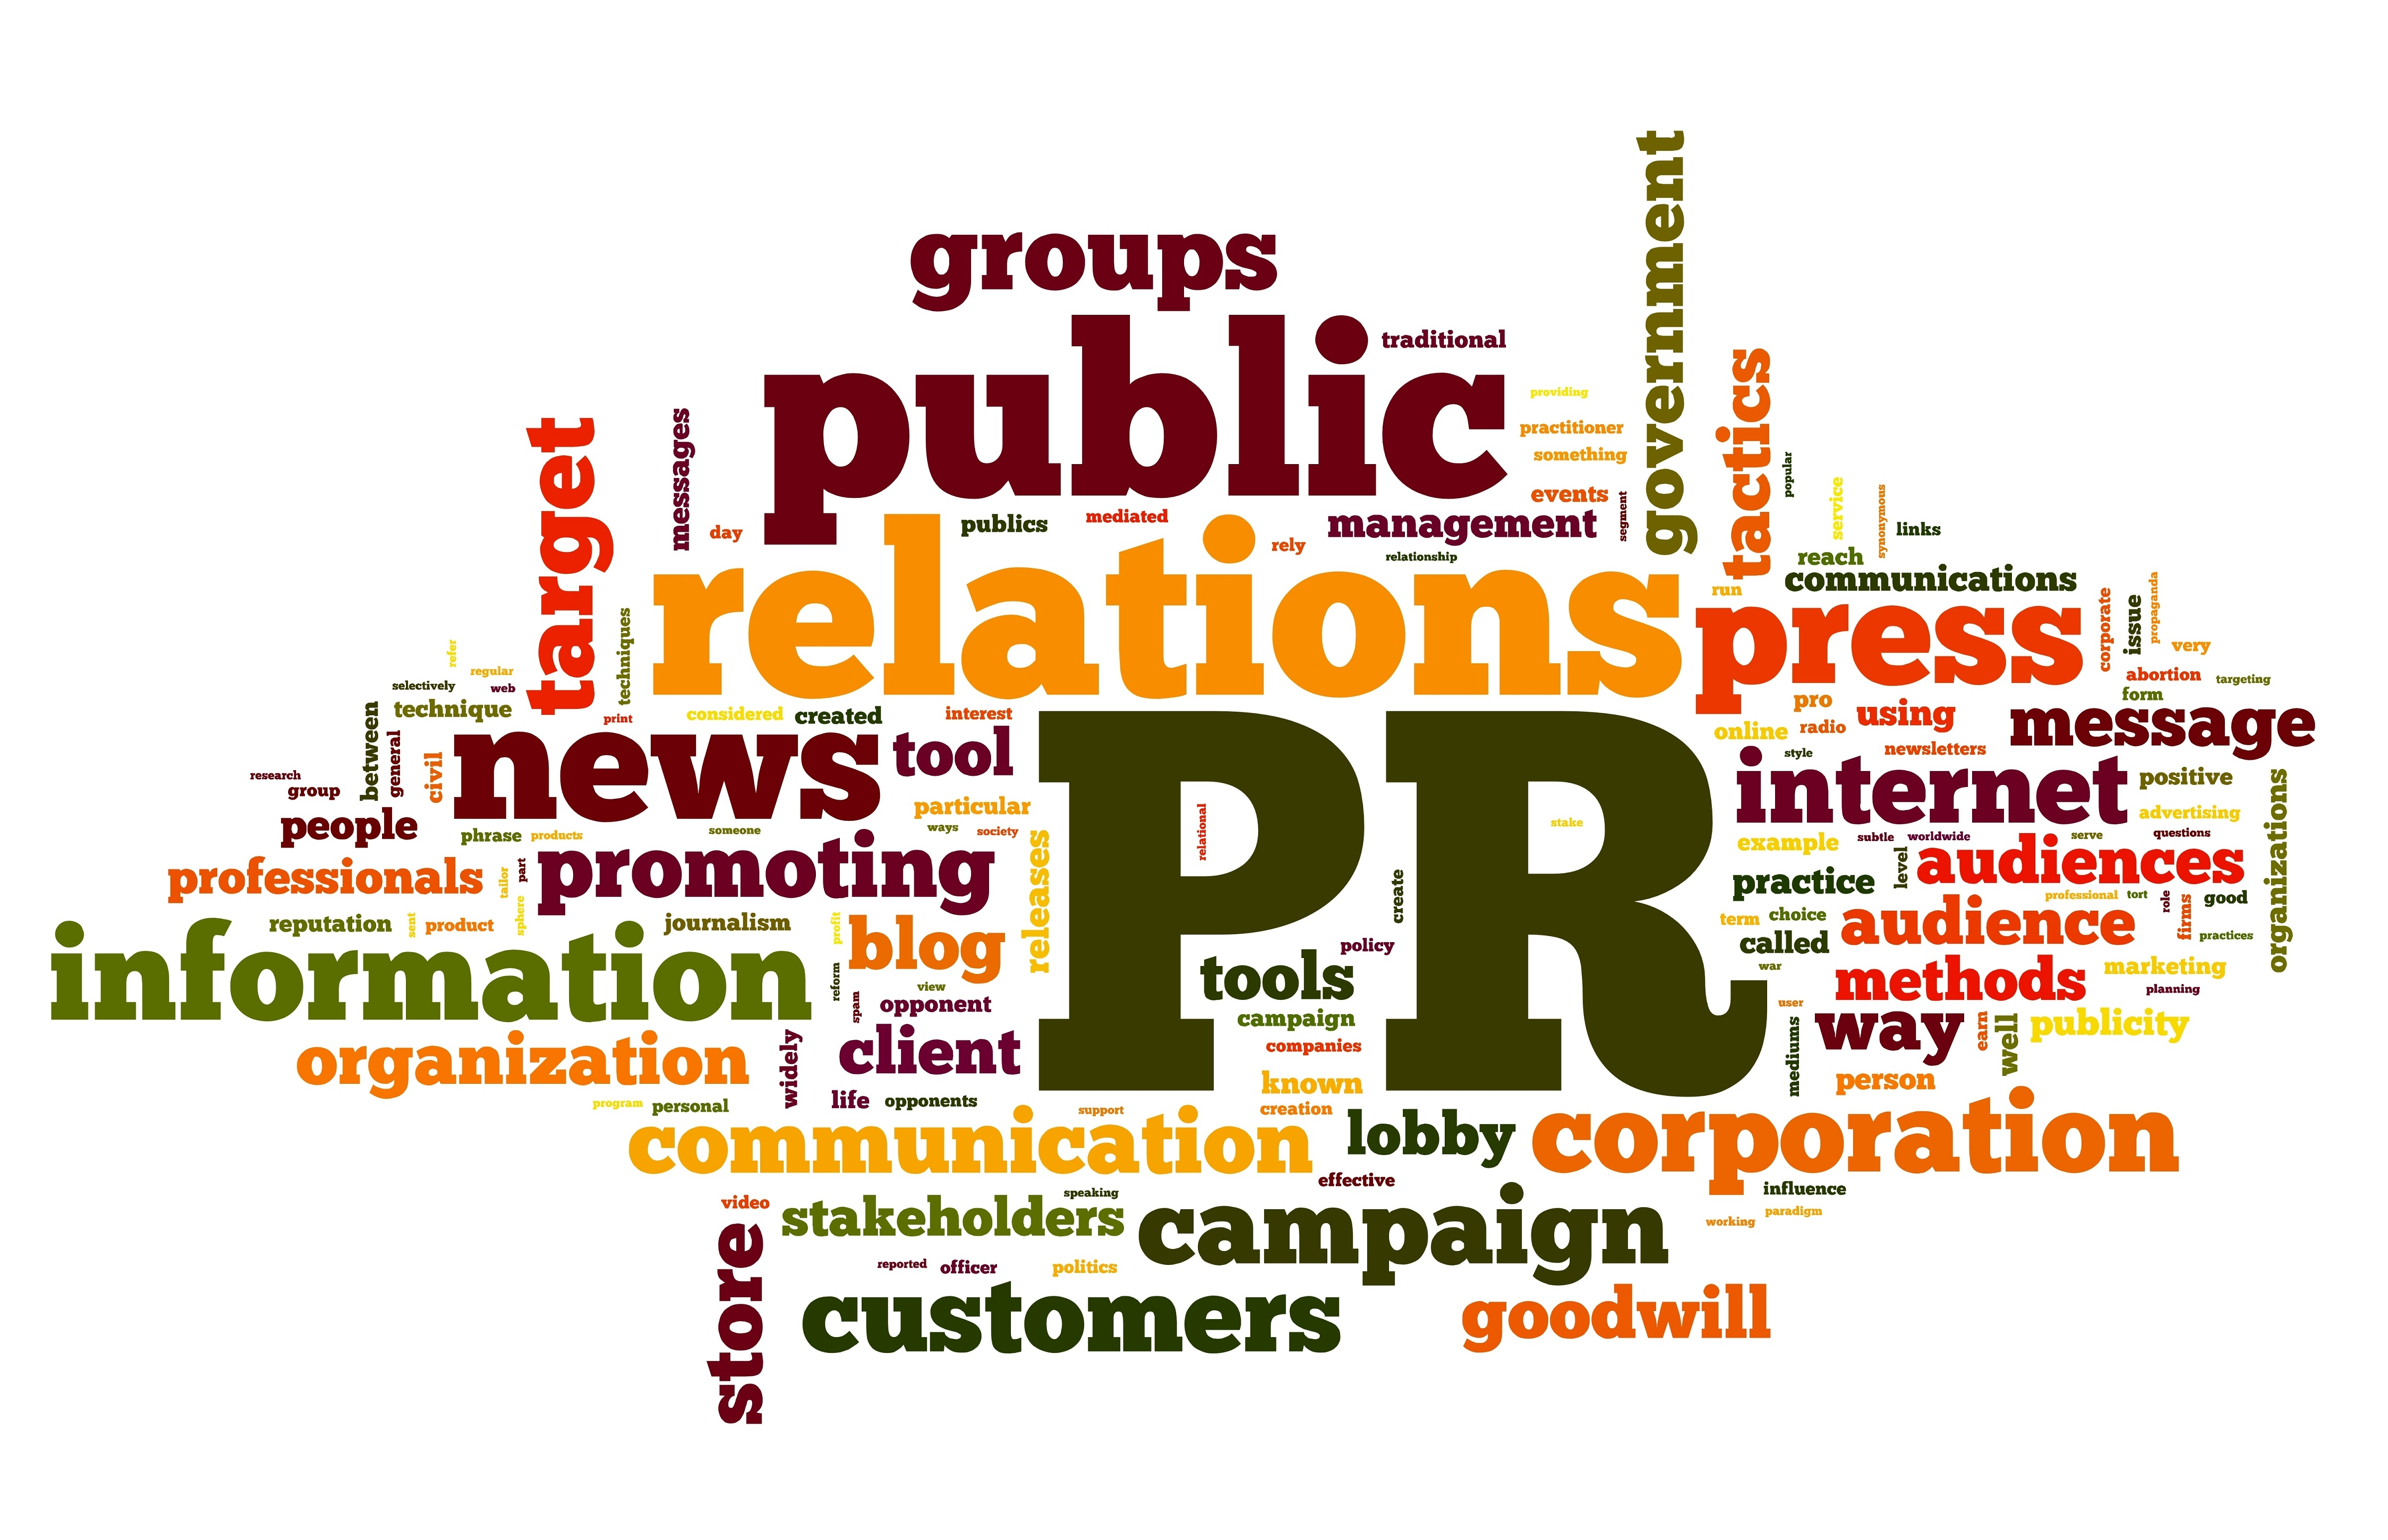 list of pr agencies in india, list of top advertising agencies in india, list of advertising agencies in delhi, top pr firms in india, top advertising agencies in delhi ncr, top advertising companies in india, leading advertising agencies in india, top ad agencies in delhi, best advertising companies in india, top advertising agencies india, top pr agencies in india, top ten advertising agencies in india, event management agency, best pr companies in india, Best advertising agencies, INS accredited advertising, Advertising agencies in Gurgaon, Creative marketing, How to Design a brand, Digital media services, Hoarding advertising services, BTL advertising, leading outdoor advertising, advertising company, newspaper ad, best advertising agency in Delhi, newspaper advertising agencies, business growth, Digital Marketing Consultancy, PR companies in India